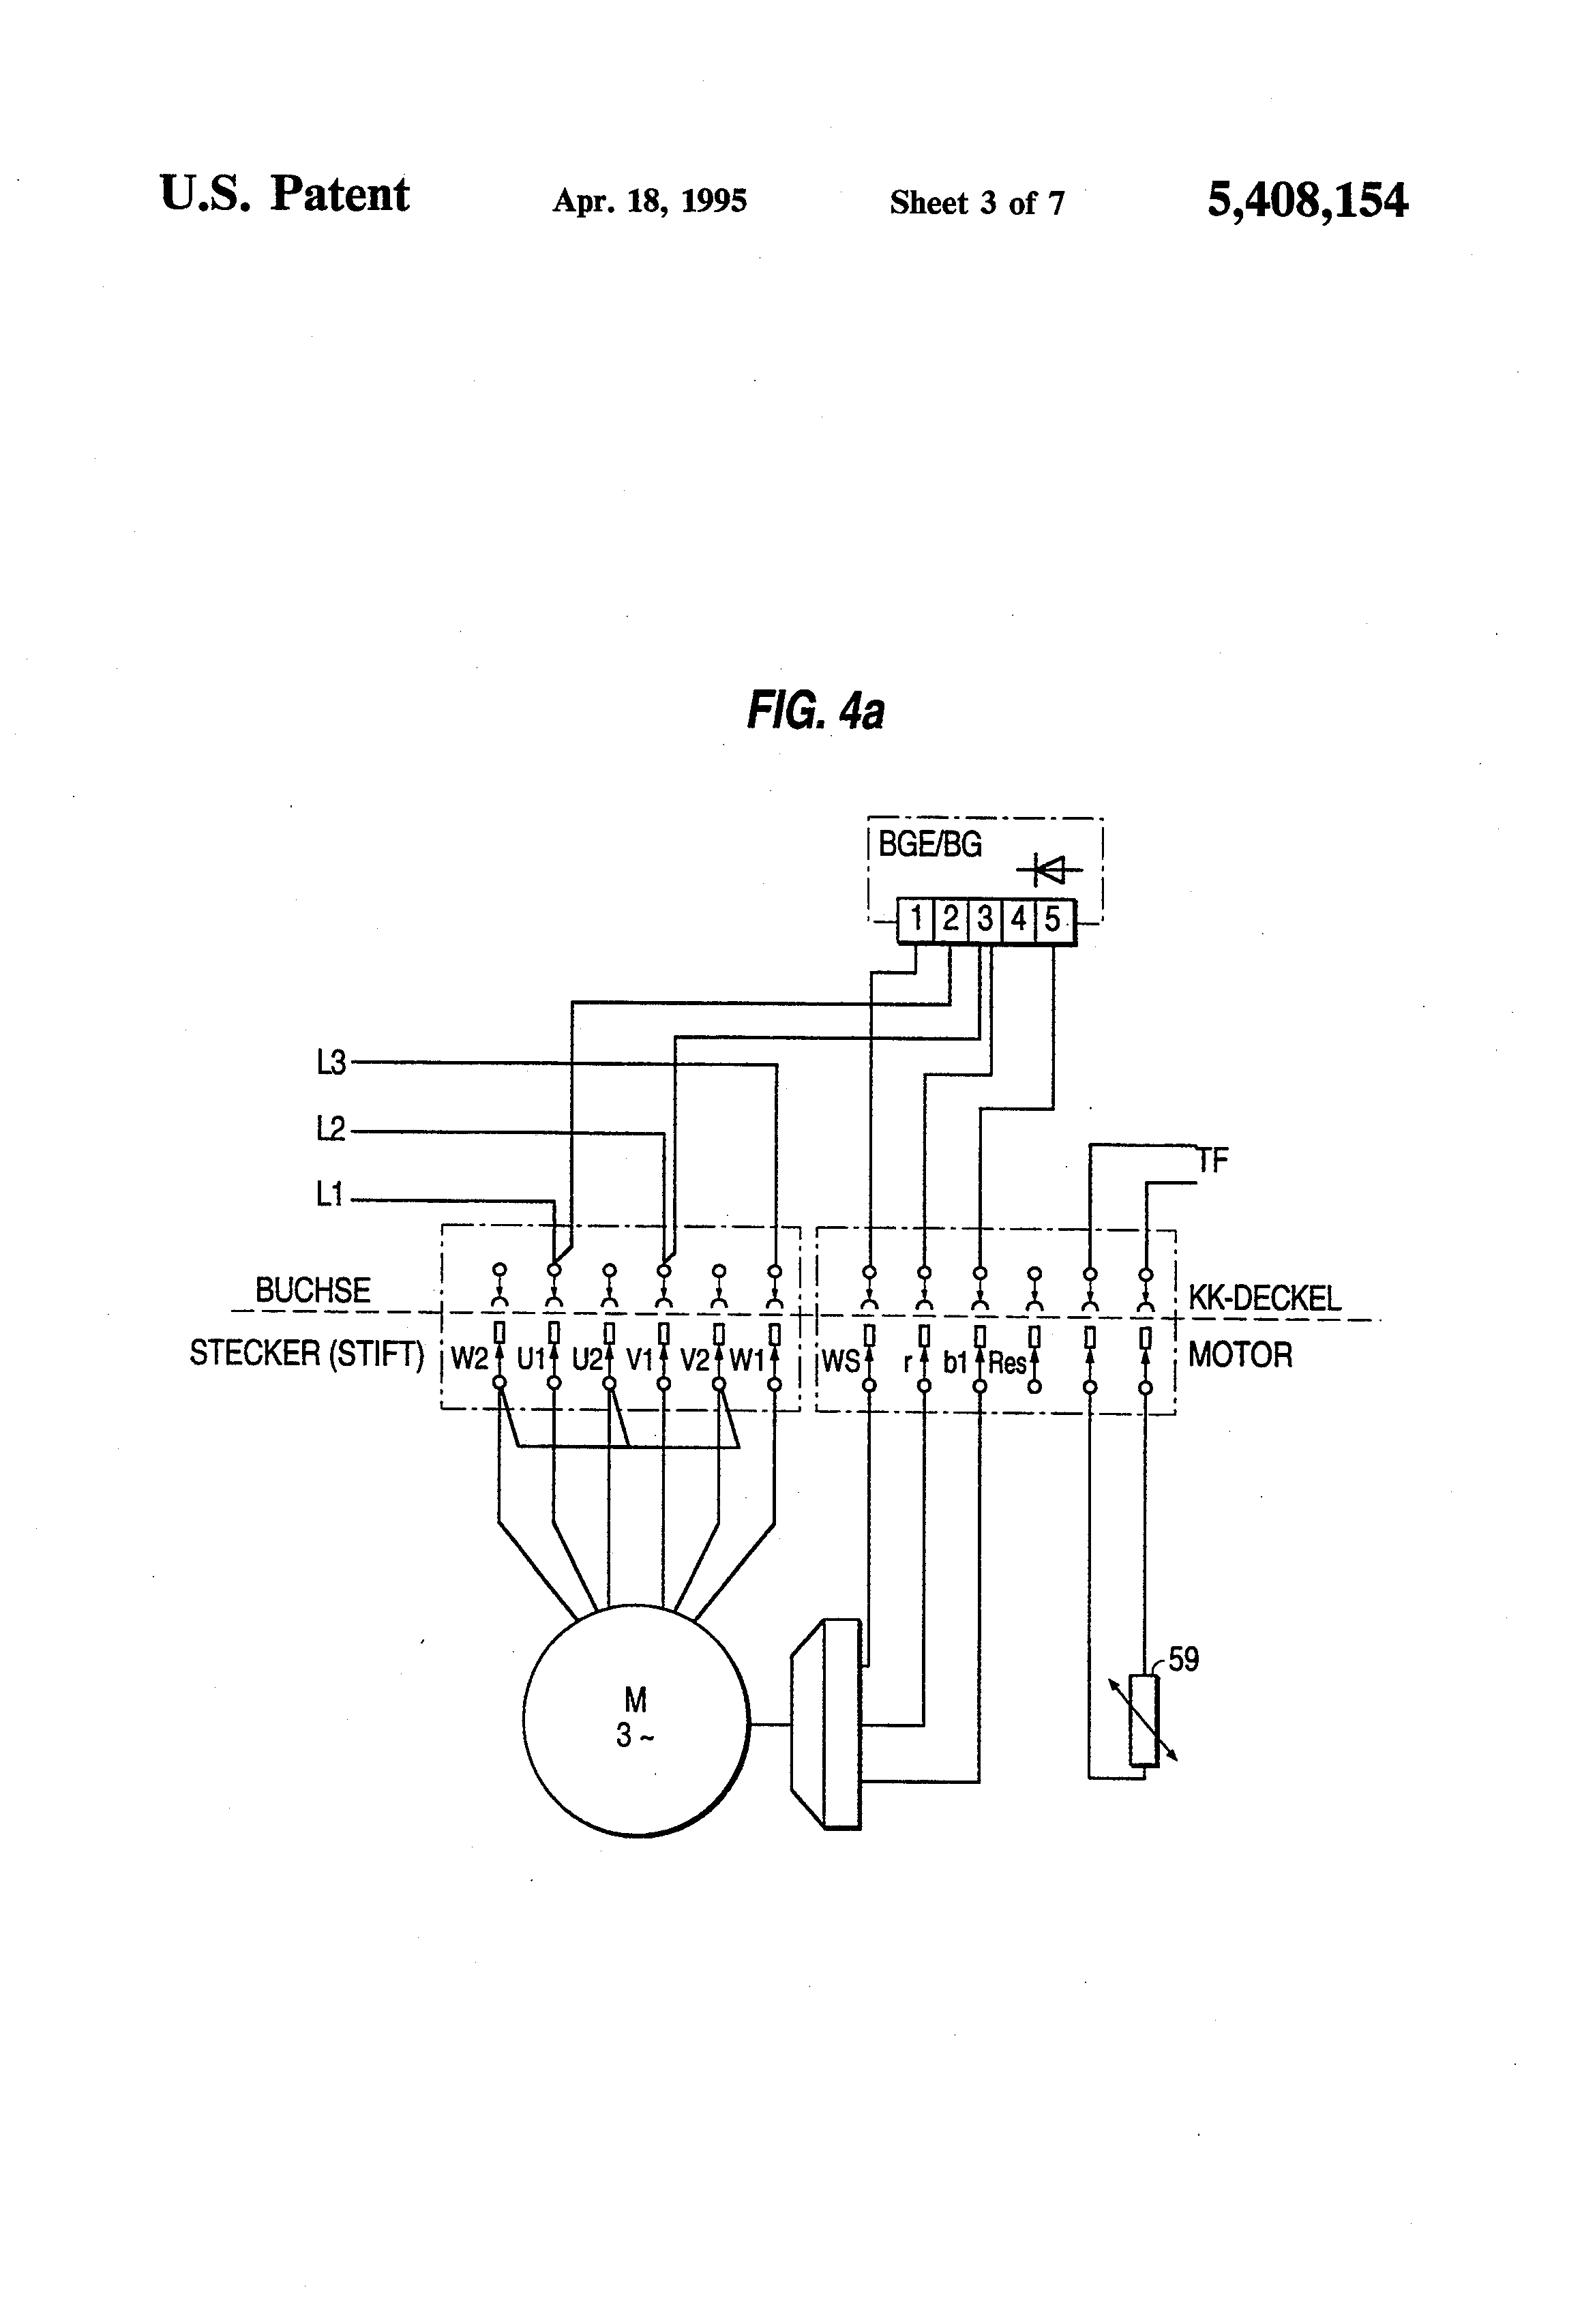 wiring connection diagram 2003 chevy avalanche bose stereo patent us5408154 motor block particularly